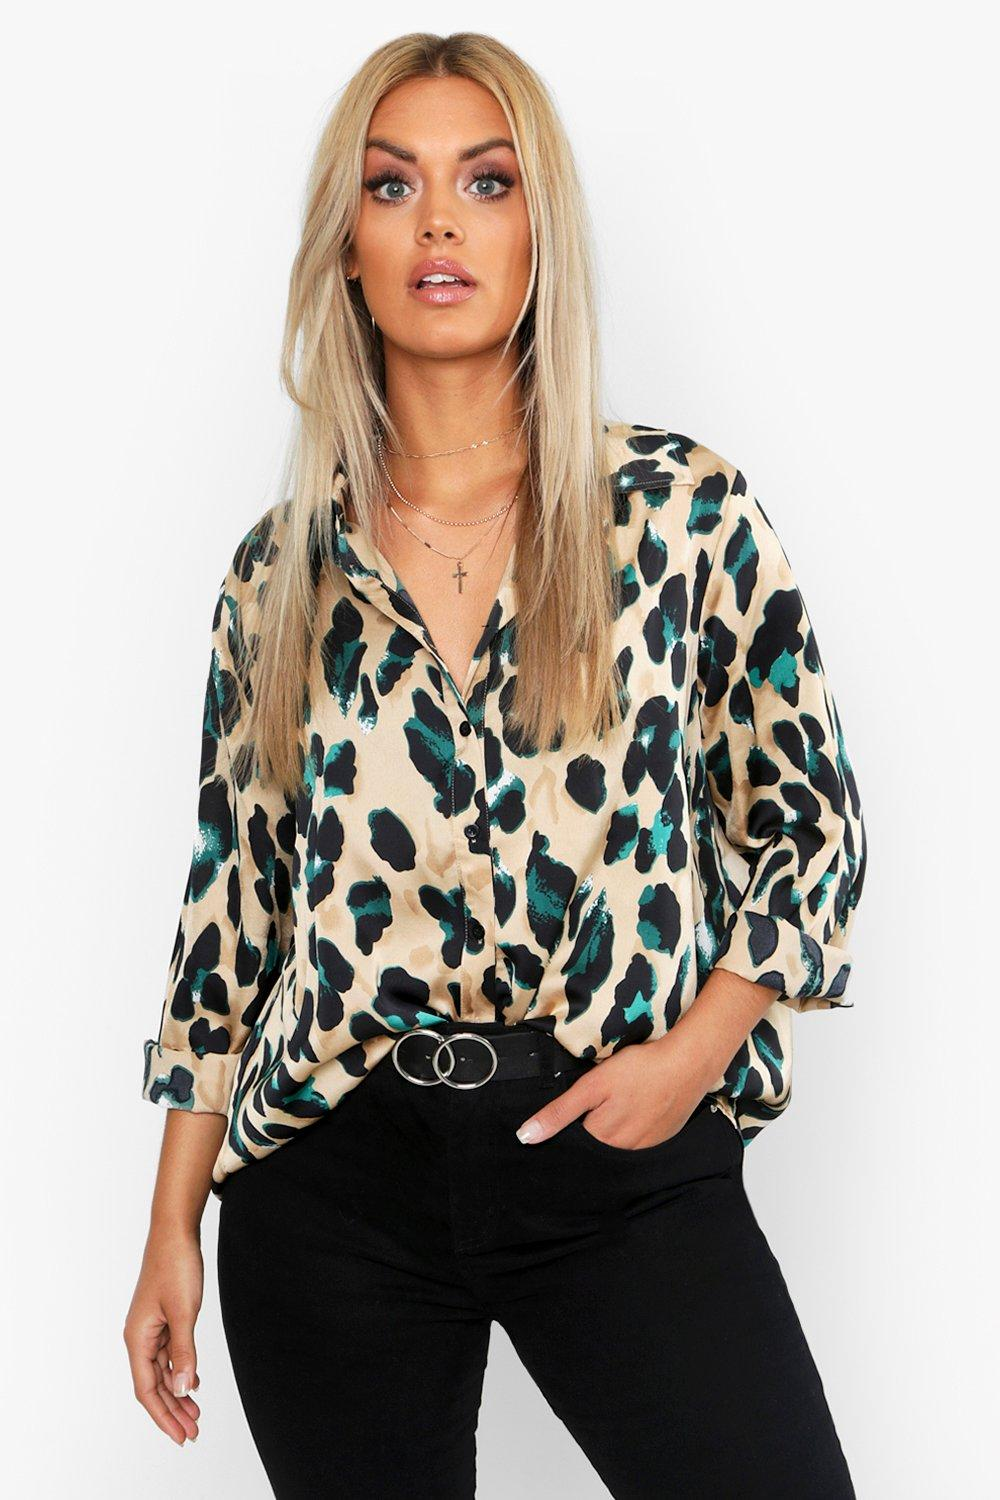 boohoo Womens Plus Satin Leopard Shirt - Black - 18, Black